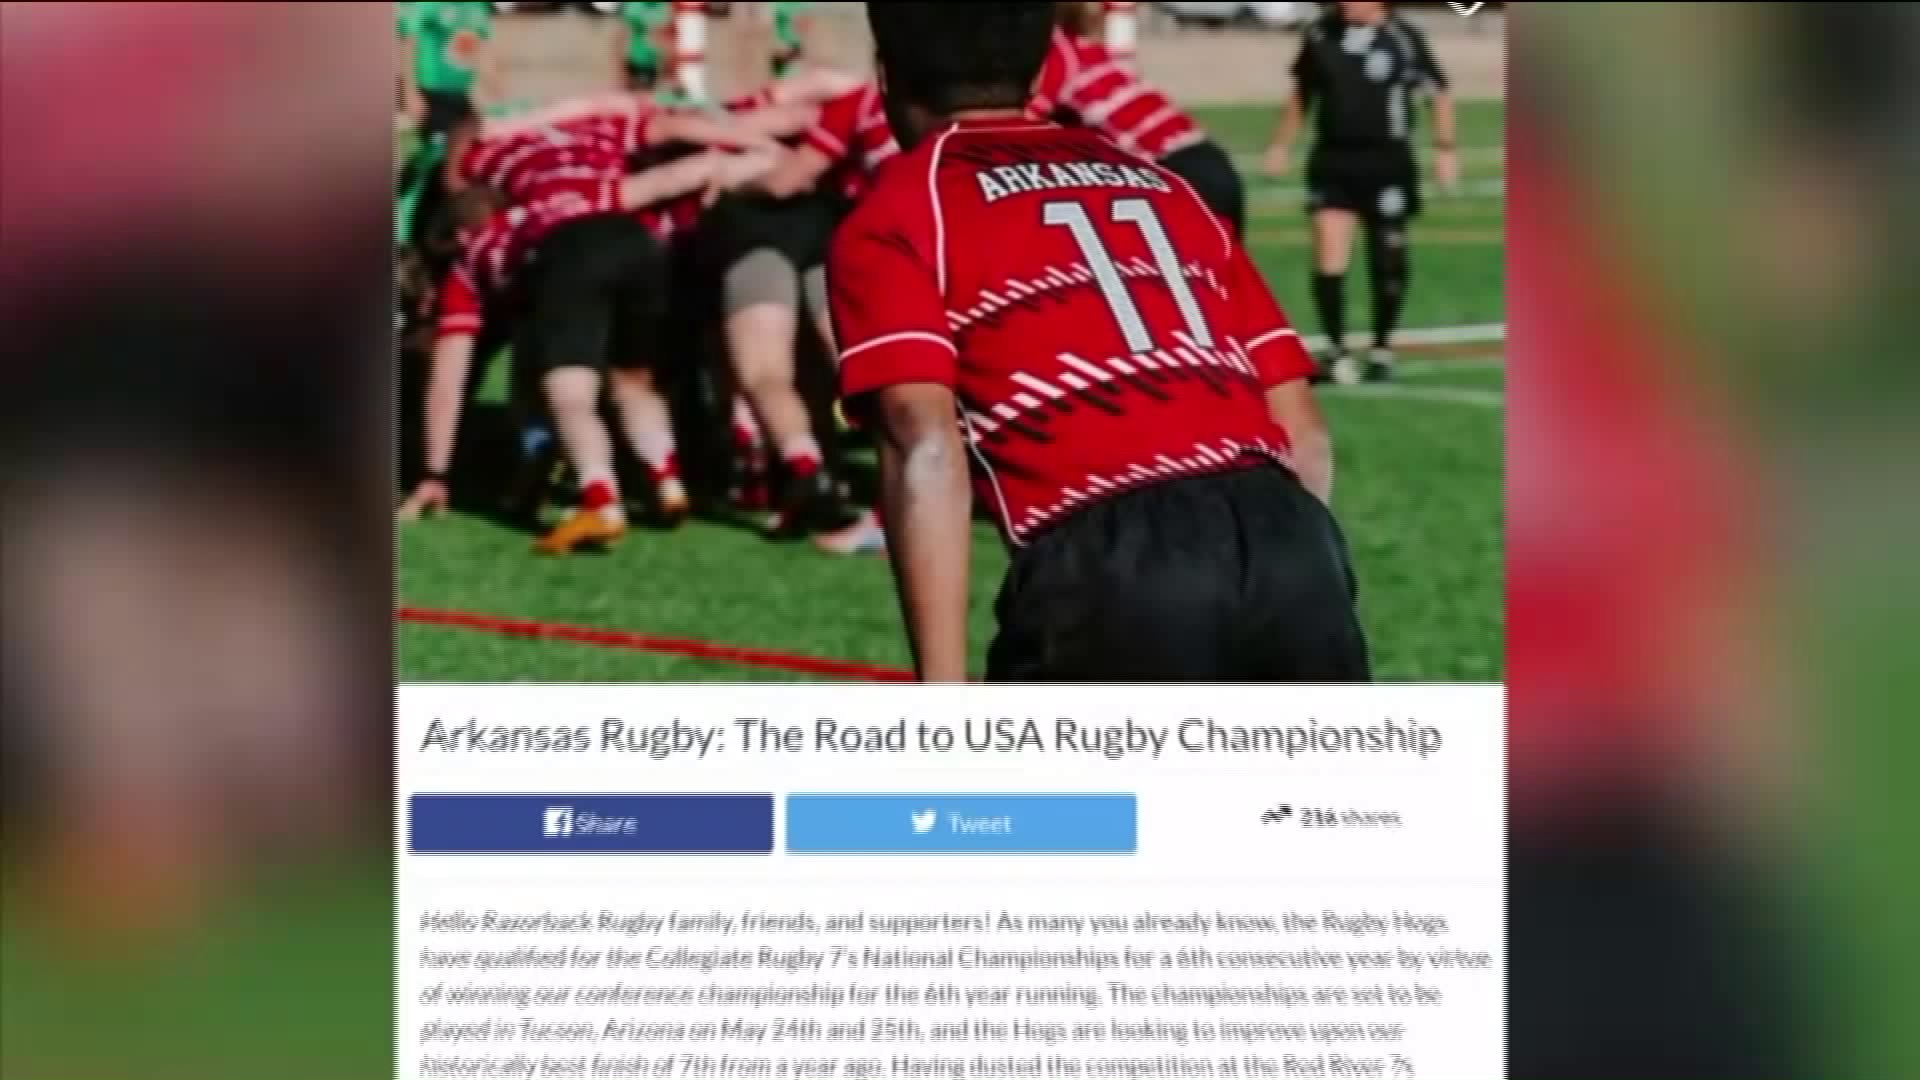 Razorback Rugby Team Asking For GoFundMe Donations